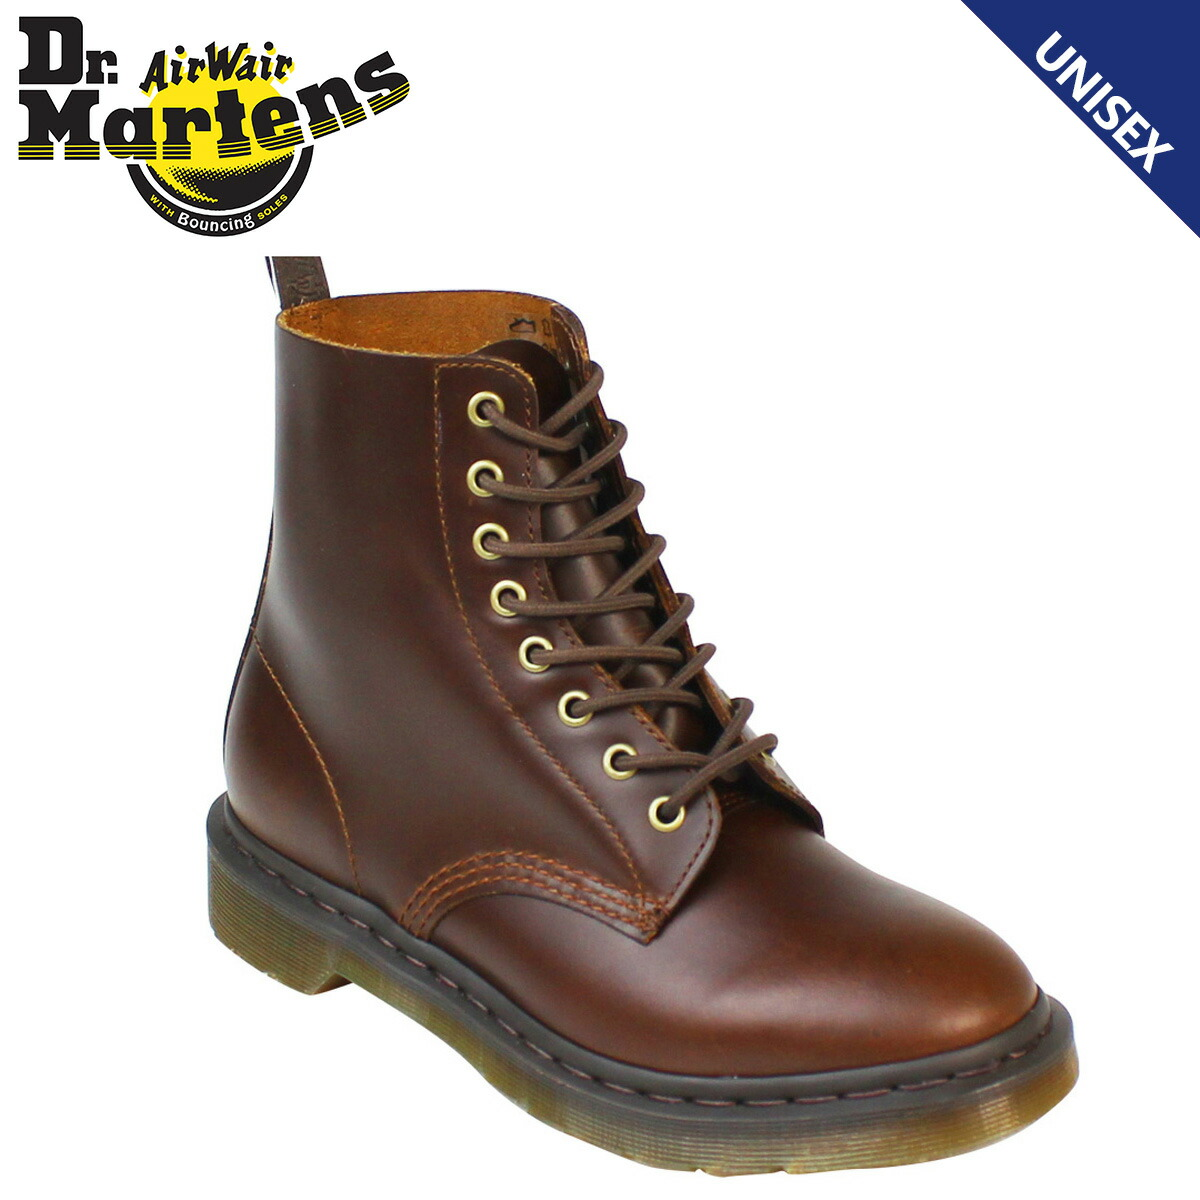 34cfc3457243 Dr. Martens Dr.Martens Pascal 8 hole boots PASCAL 8 EYE BOOT leather men s  lace-up boots R16179240 smoke  10   24 new in stock   regular